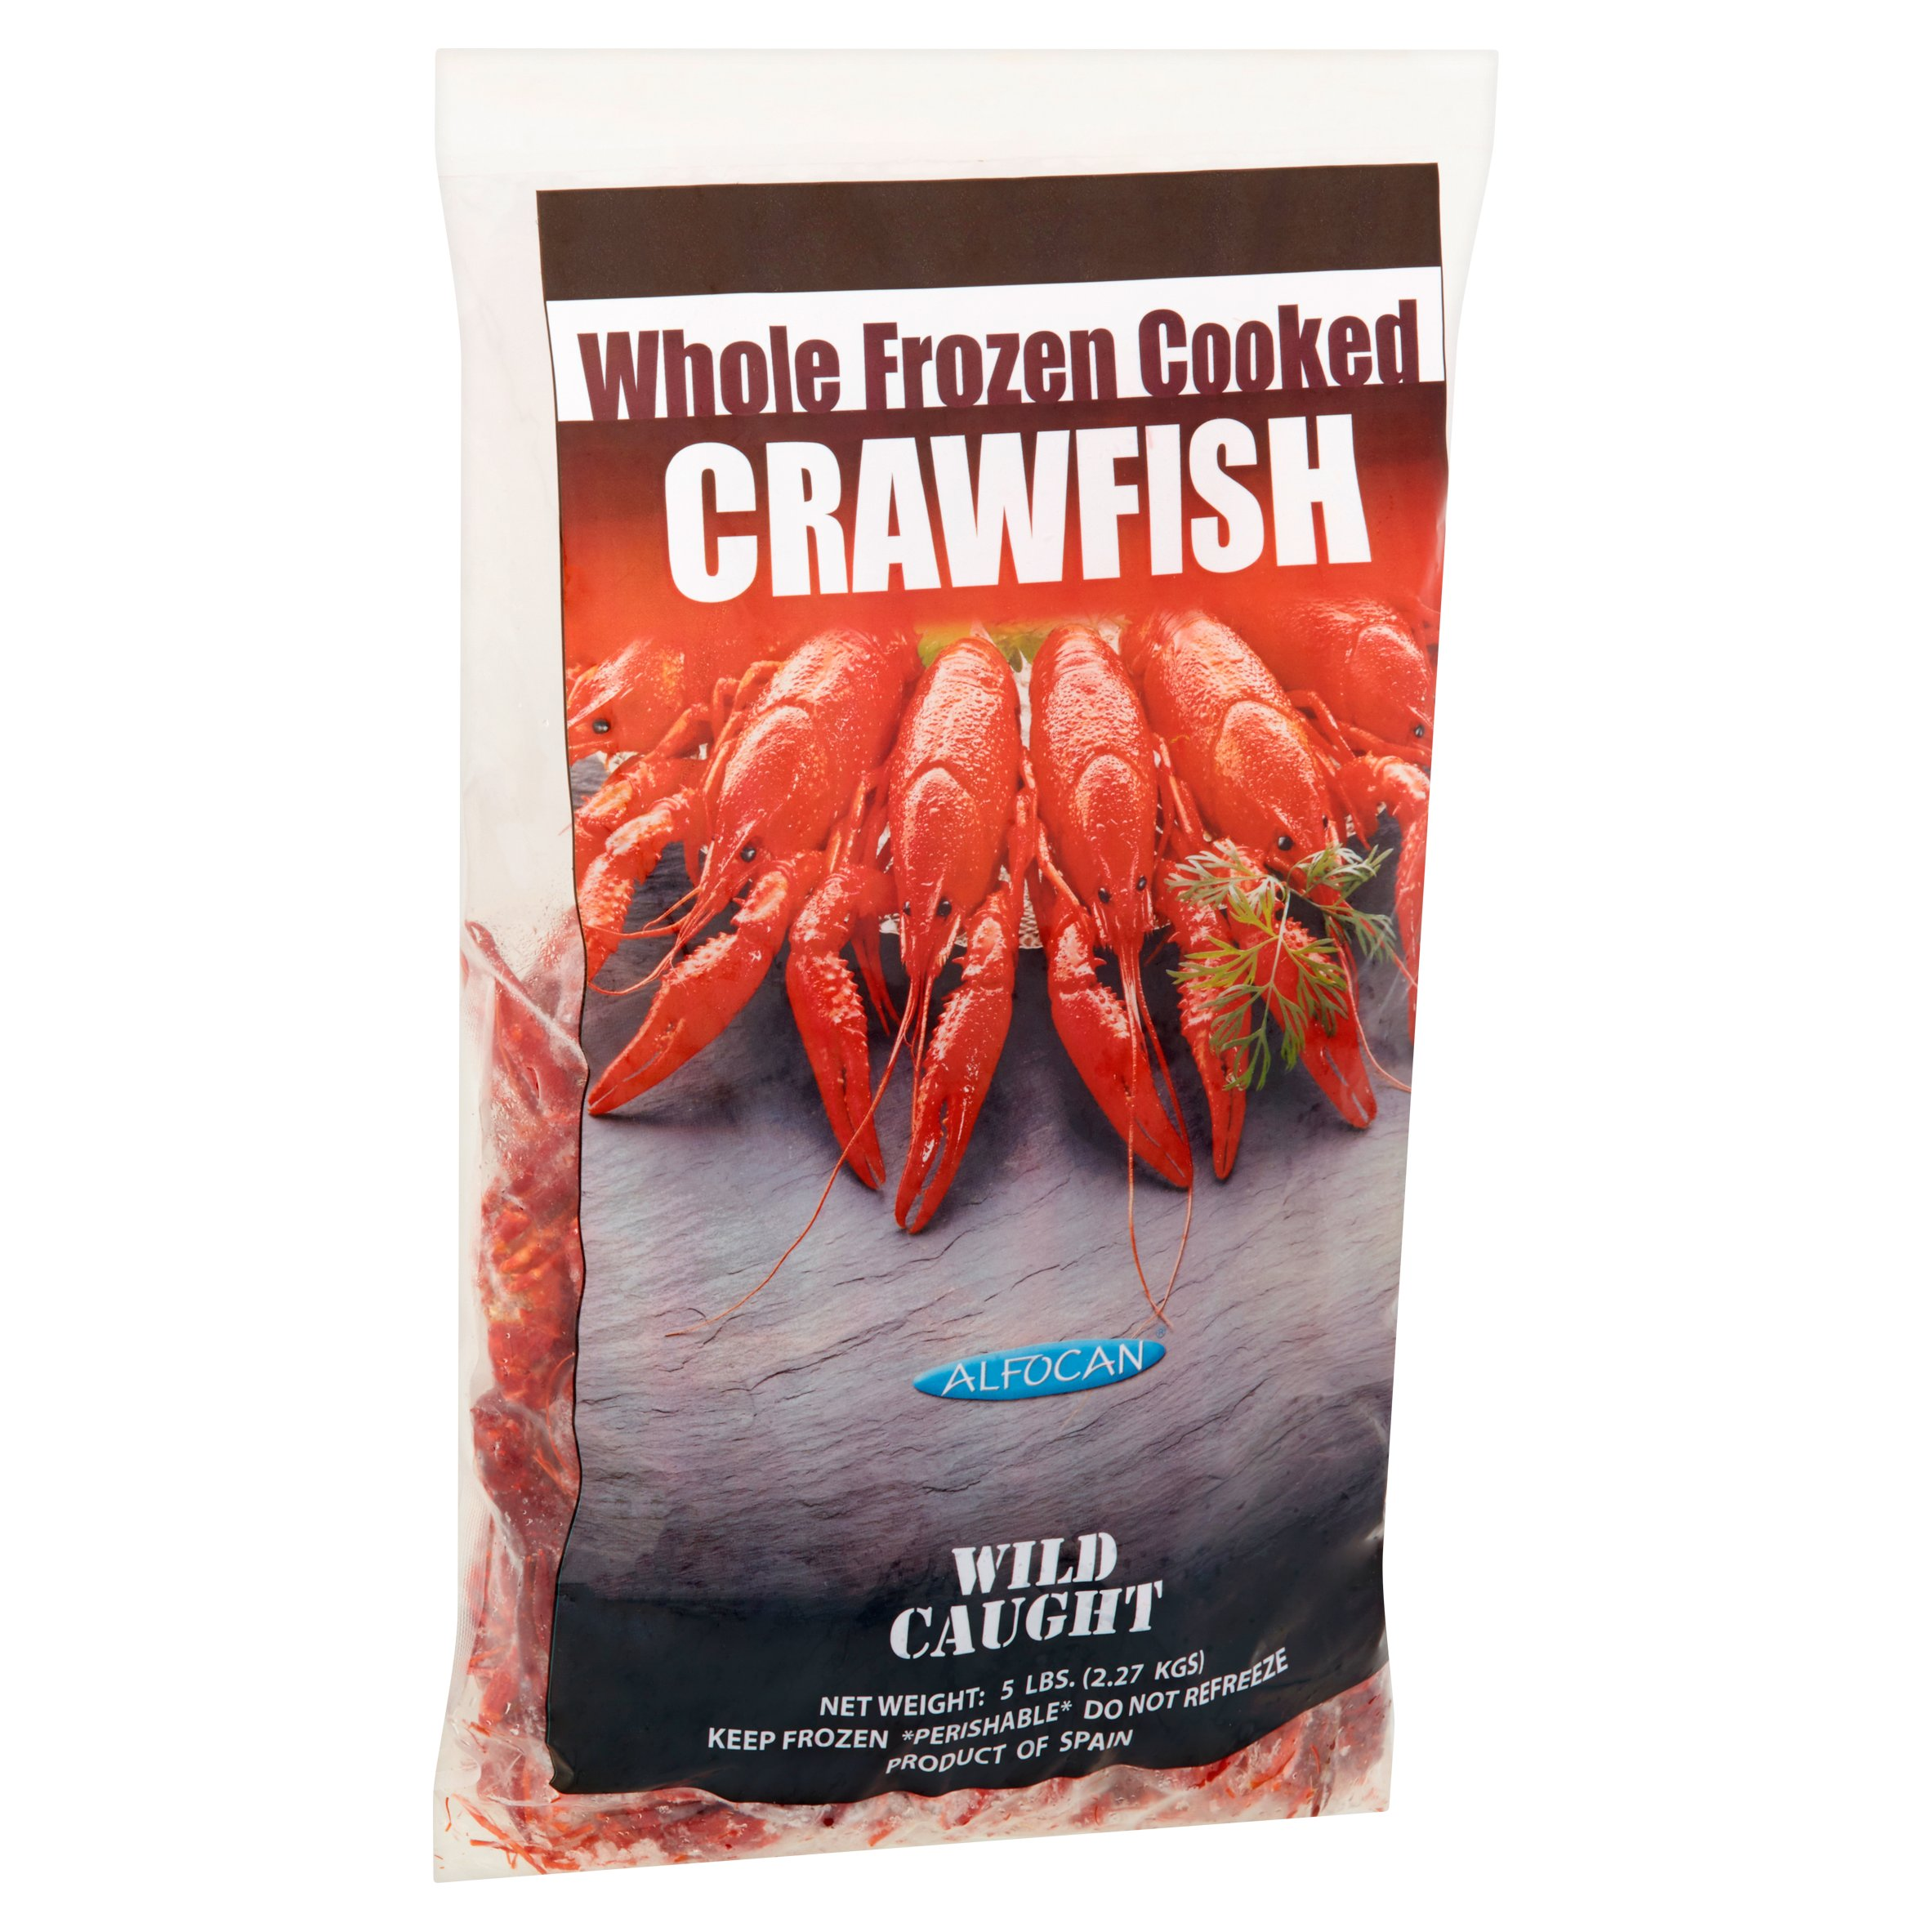 Crawfish alfocan whole frozen cooked crawfish 5 lbs ccuart Images